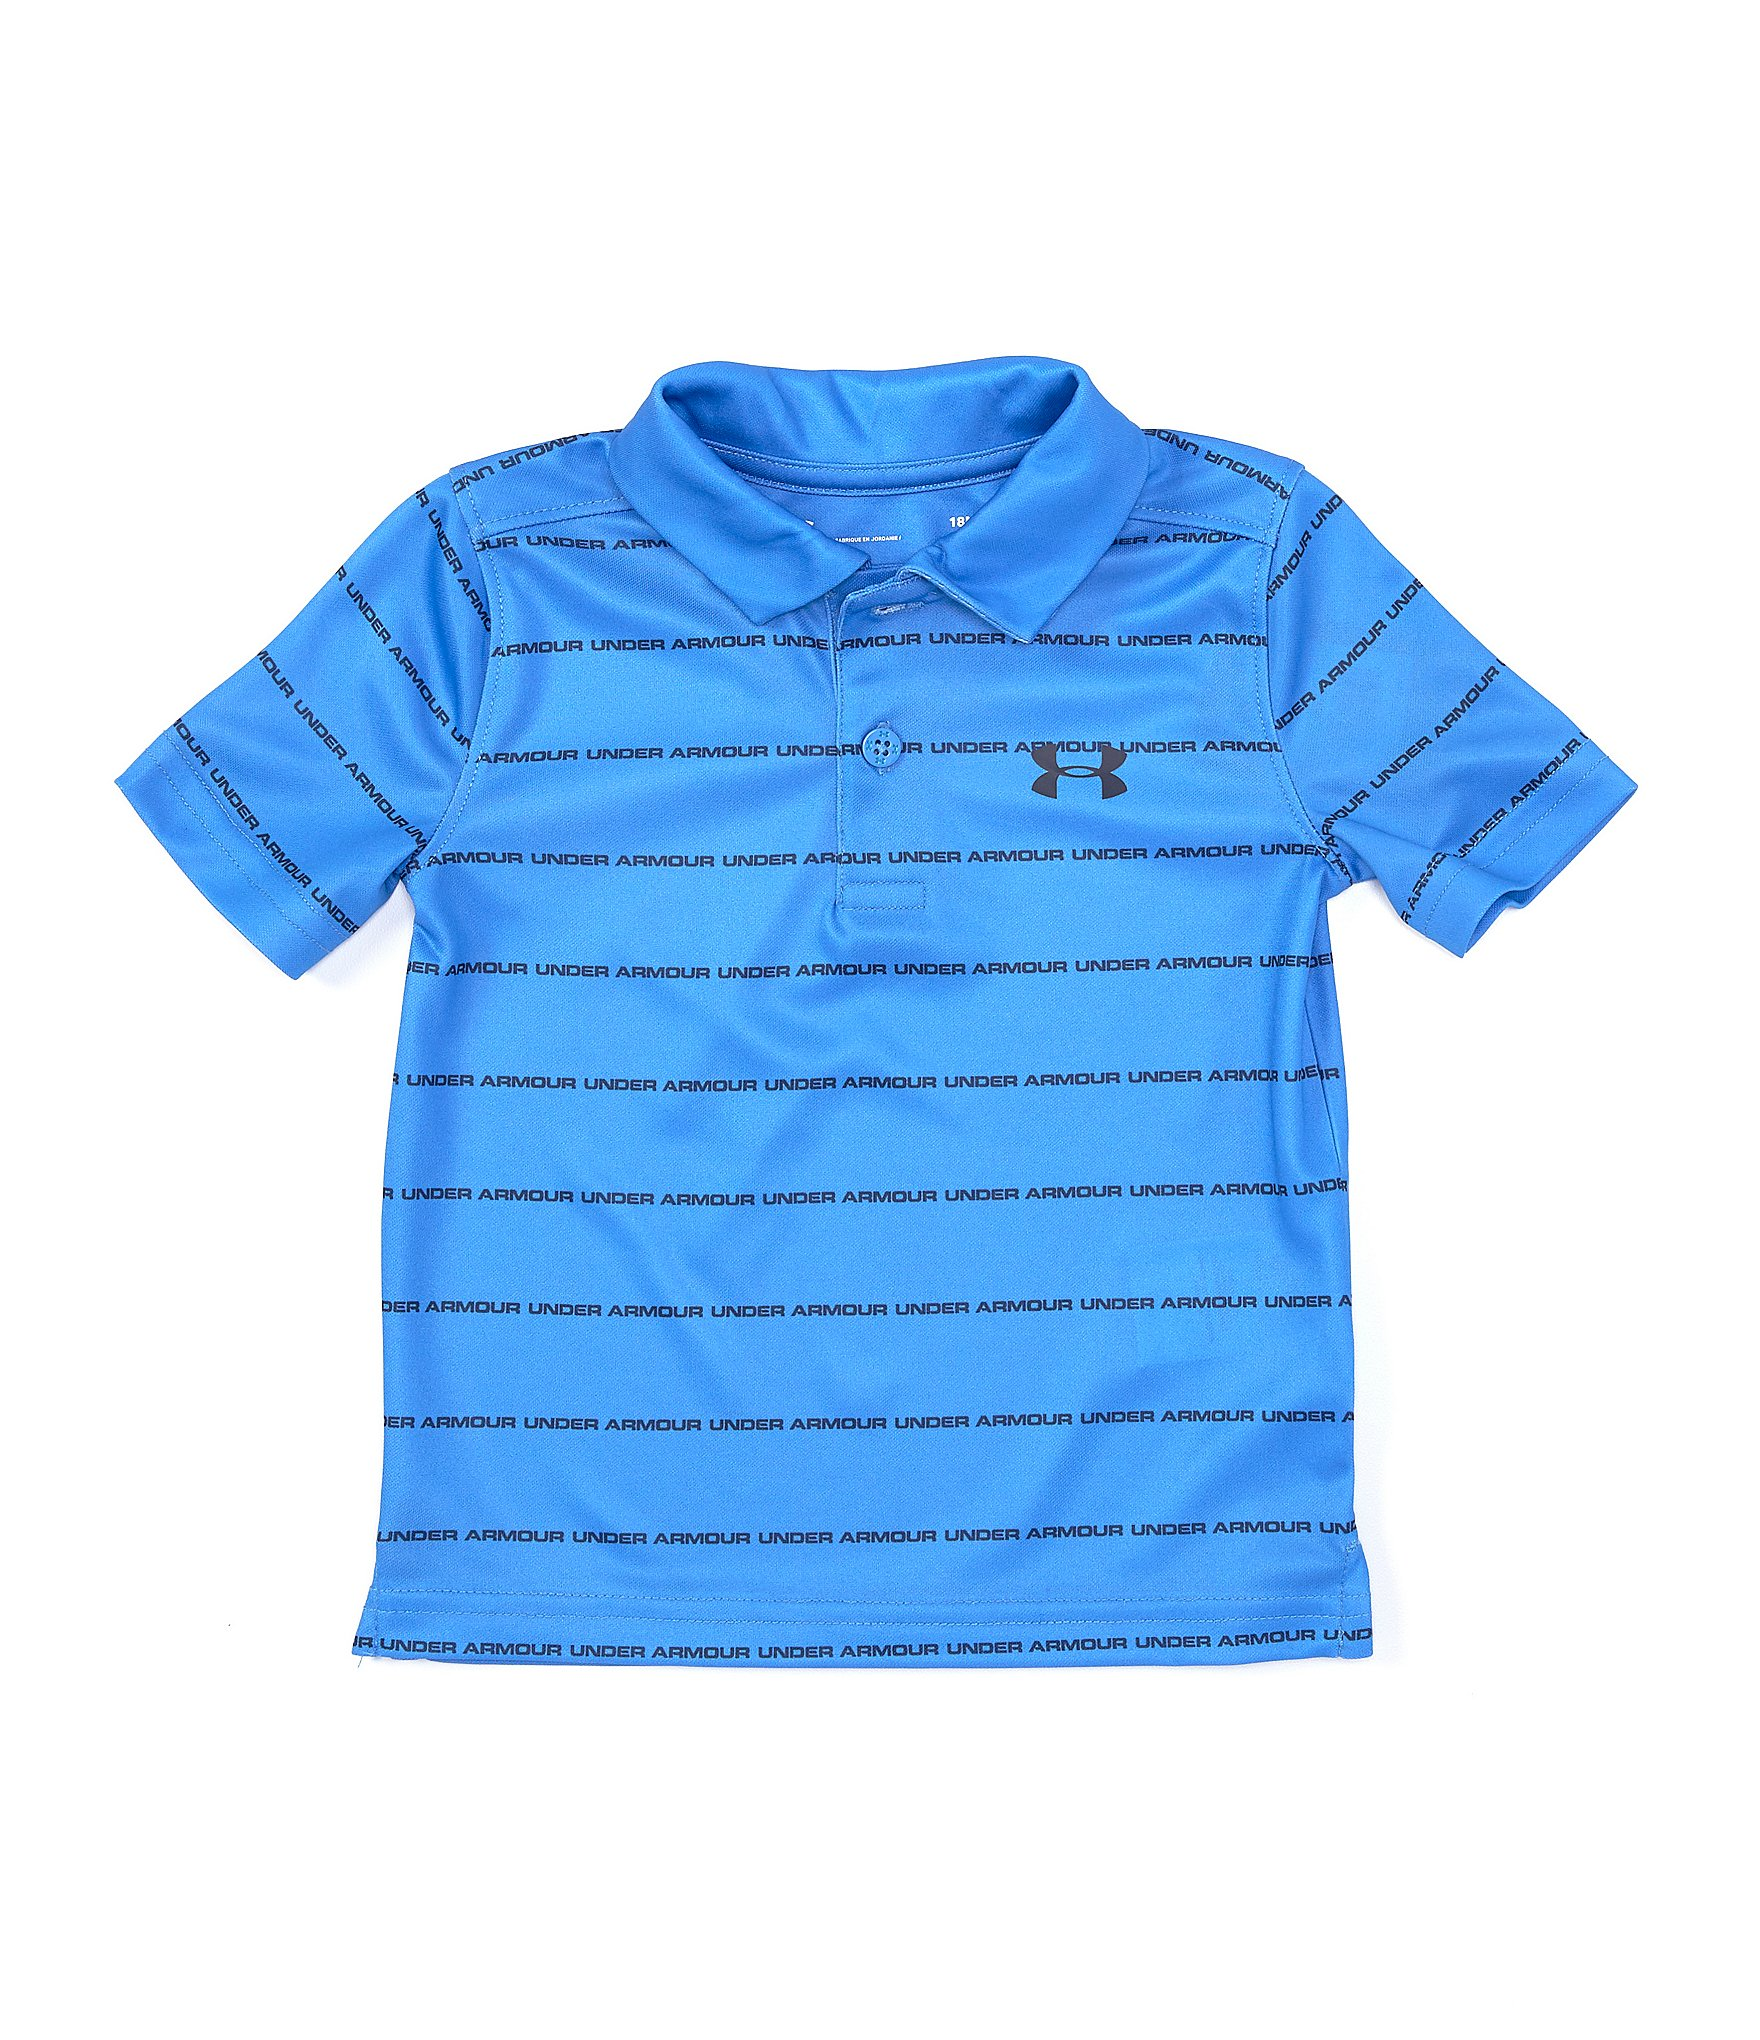 Under Armour Baby Boys 12-24 Months Game Changer Long Sleeve Slider Tee /& Jogger